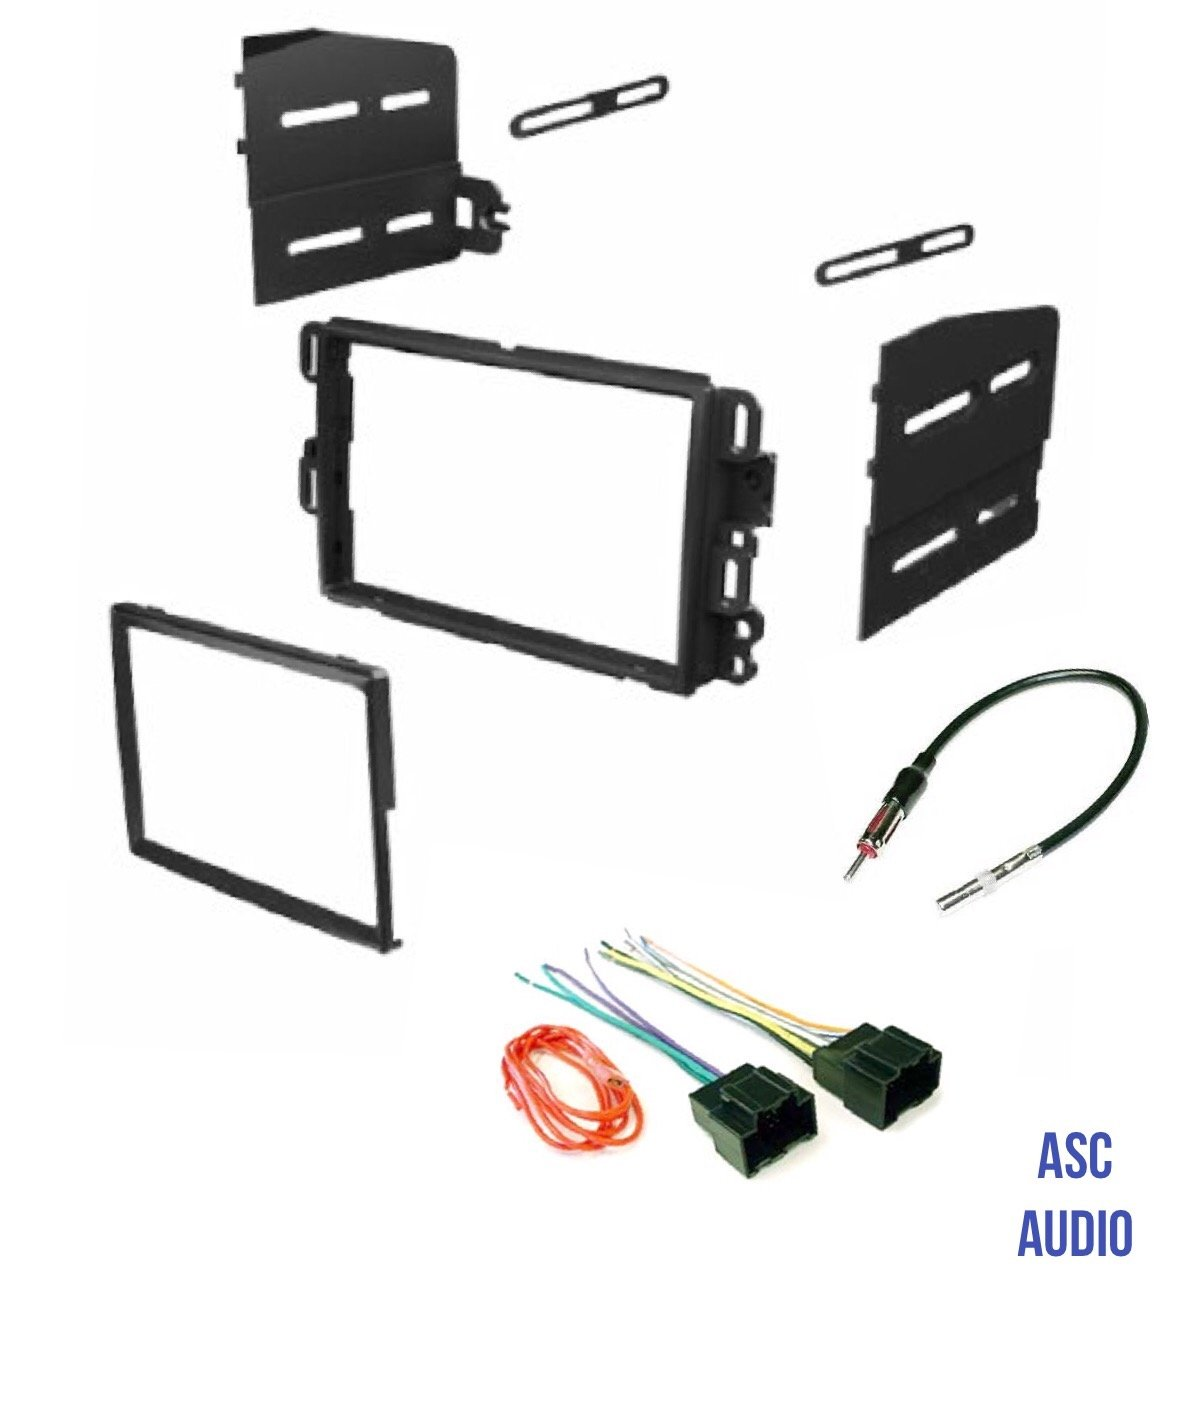 Amazon.com: ASC Car Stereo Dash Kit, Wire Harness, and Antenna Adapter  Combo to Add a Double Din Radio for some Buick Chevrolet GMC Pontiac  Saturn- most 2007-2011 Tahoe, Silverado, Suburban etc.- ListedAmazon.com